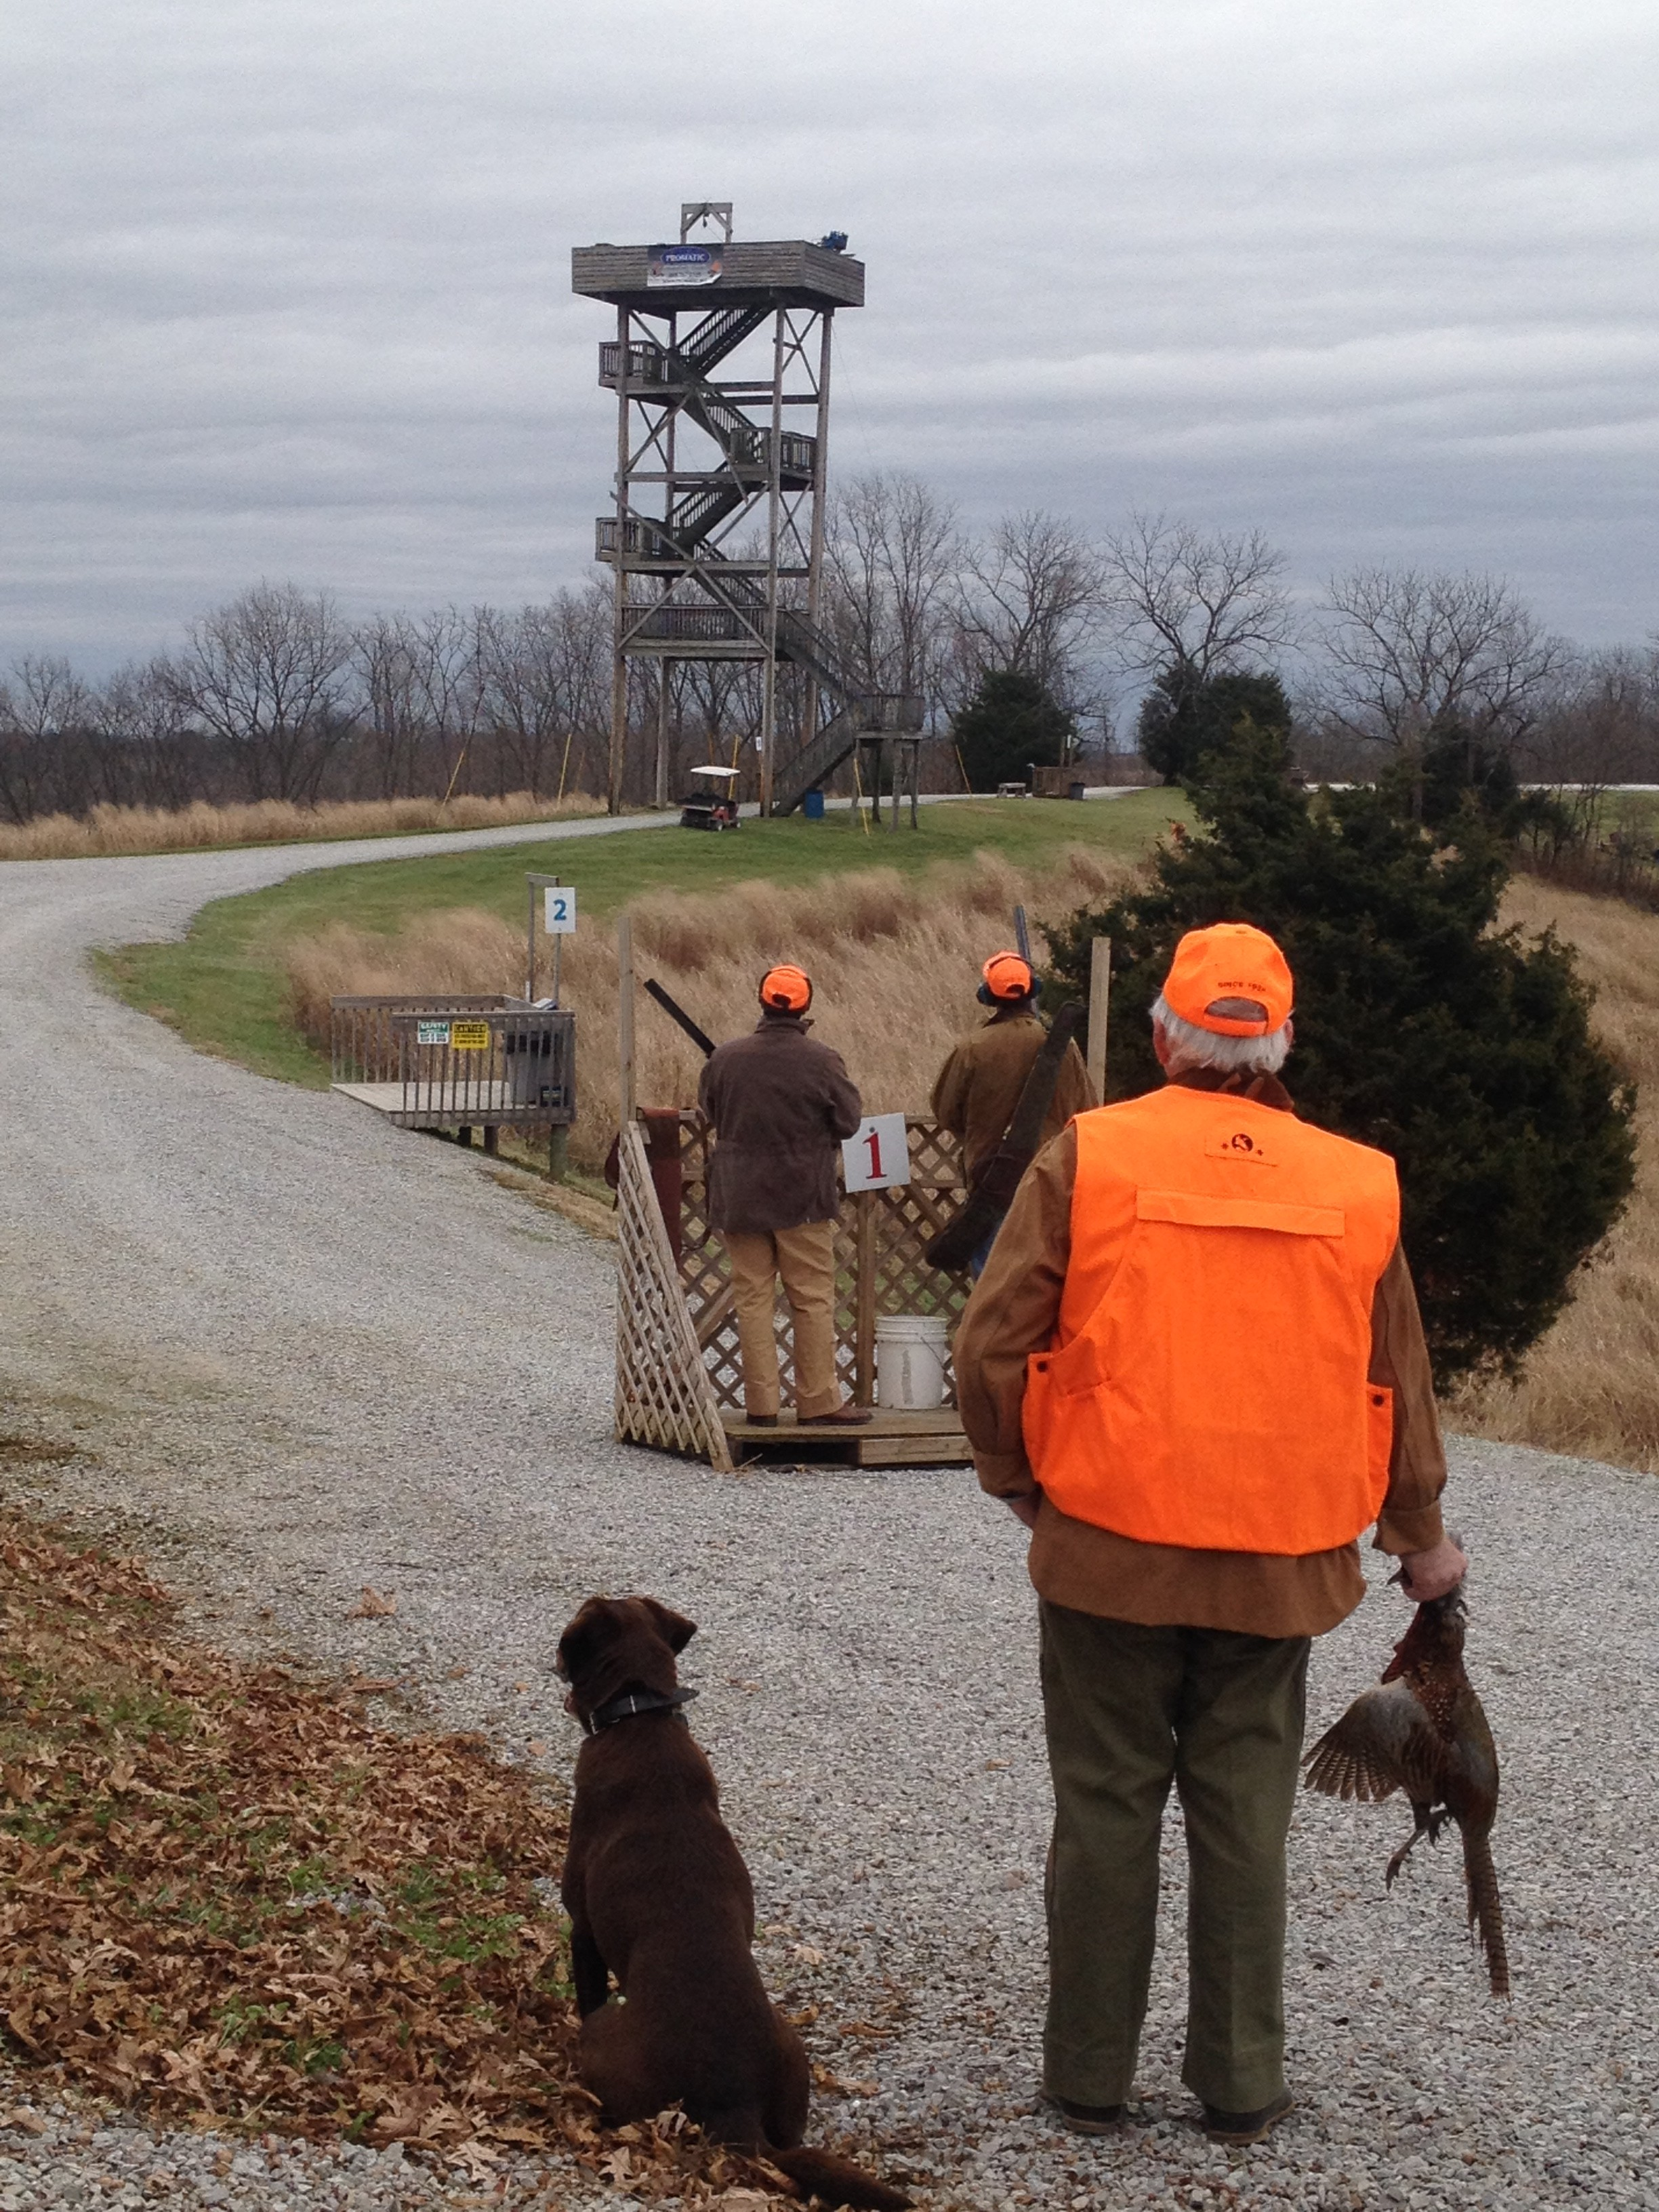 Hunting tower packages bdr shooting sports llcbdr for Kentucky fishing license cost